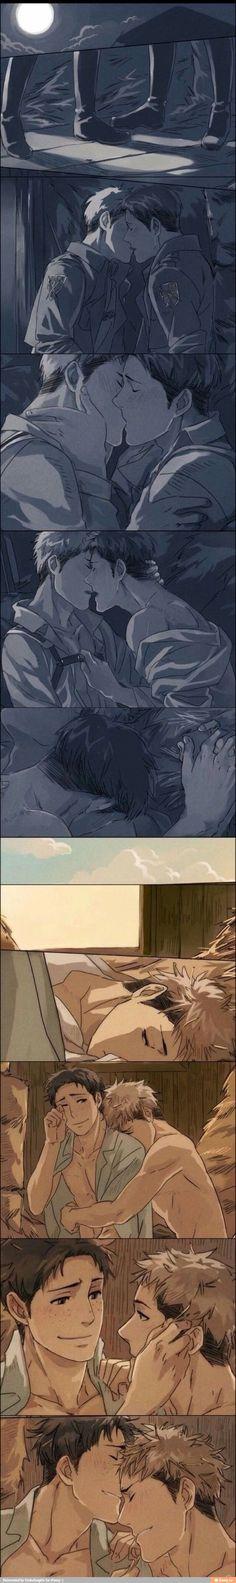 MarcoxJean-AoT/SnK Well that escalated quickly XD